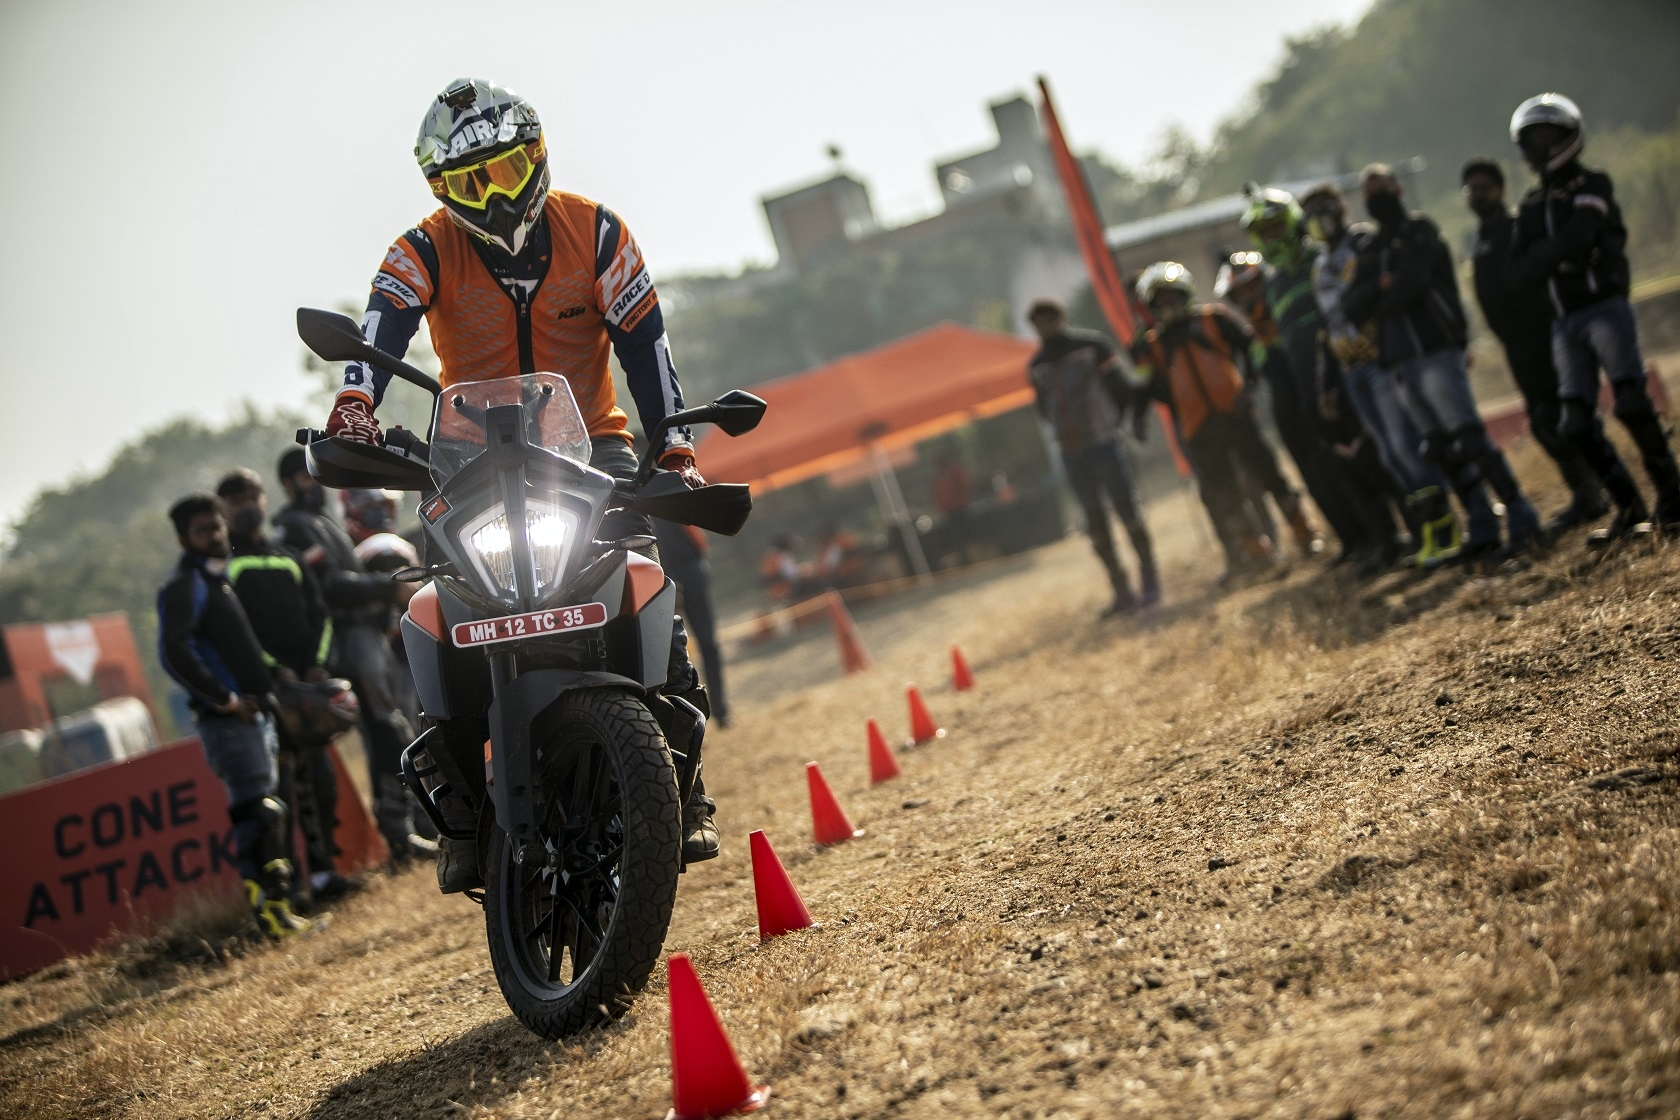 KTM Adventure Day in Pune concludes successfully